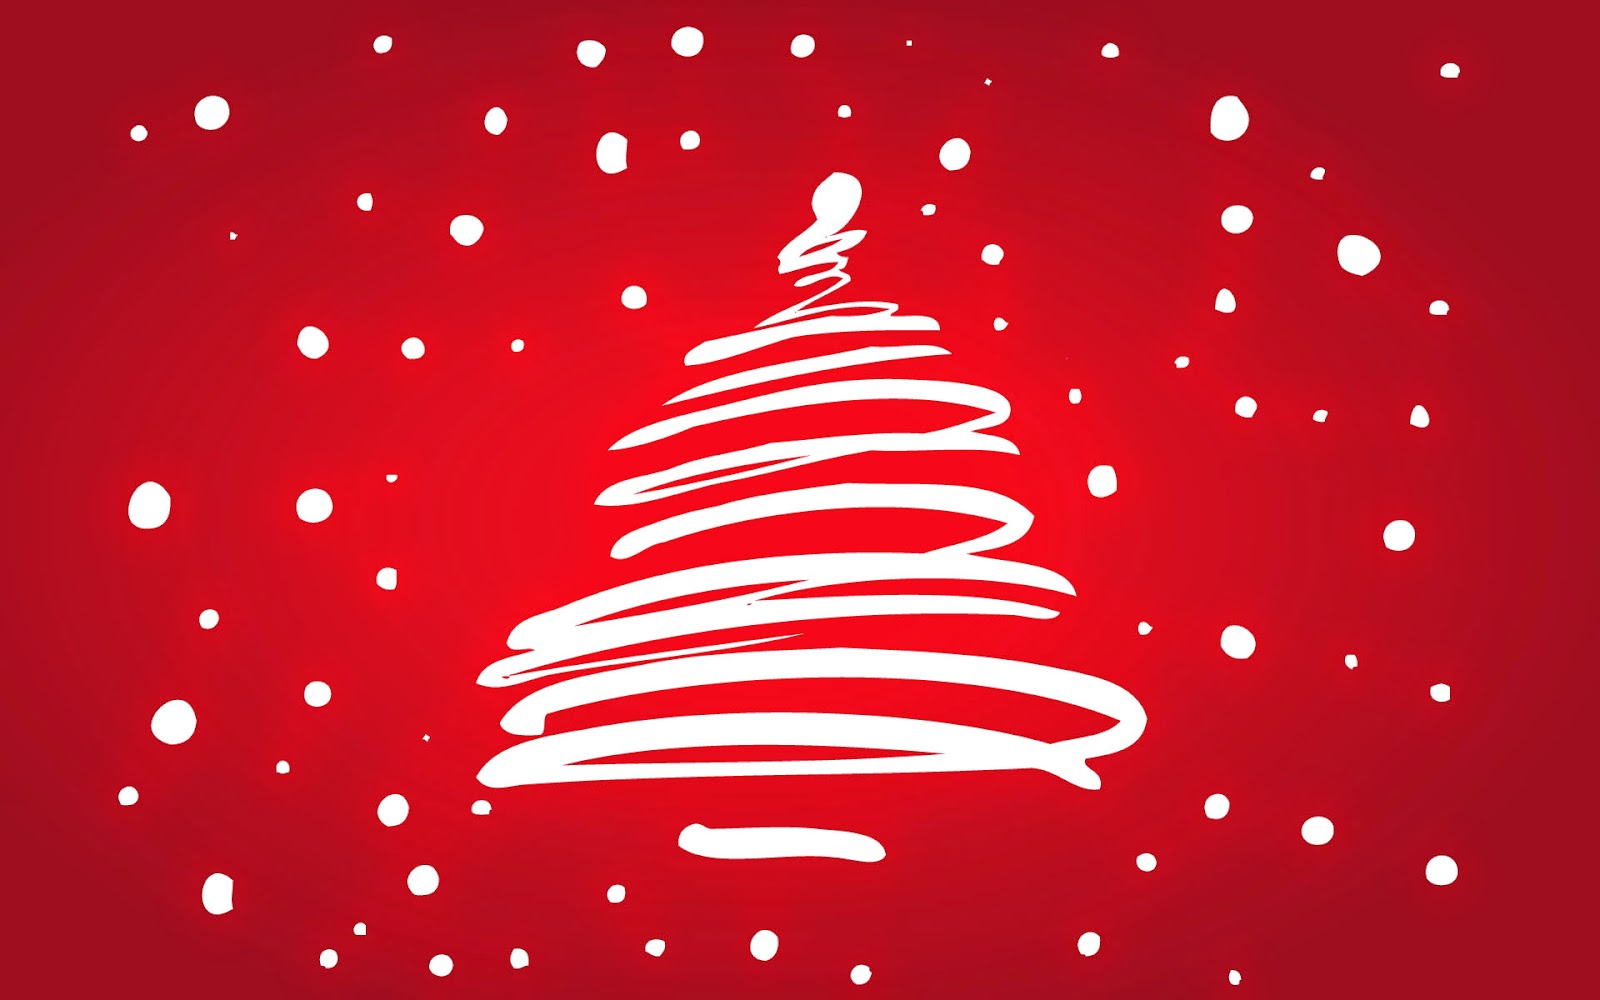 Christmas-tree-white-snow-flakes-in-red-BG-graphics-design-image.jpg